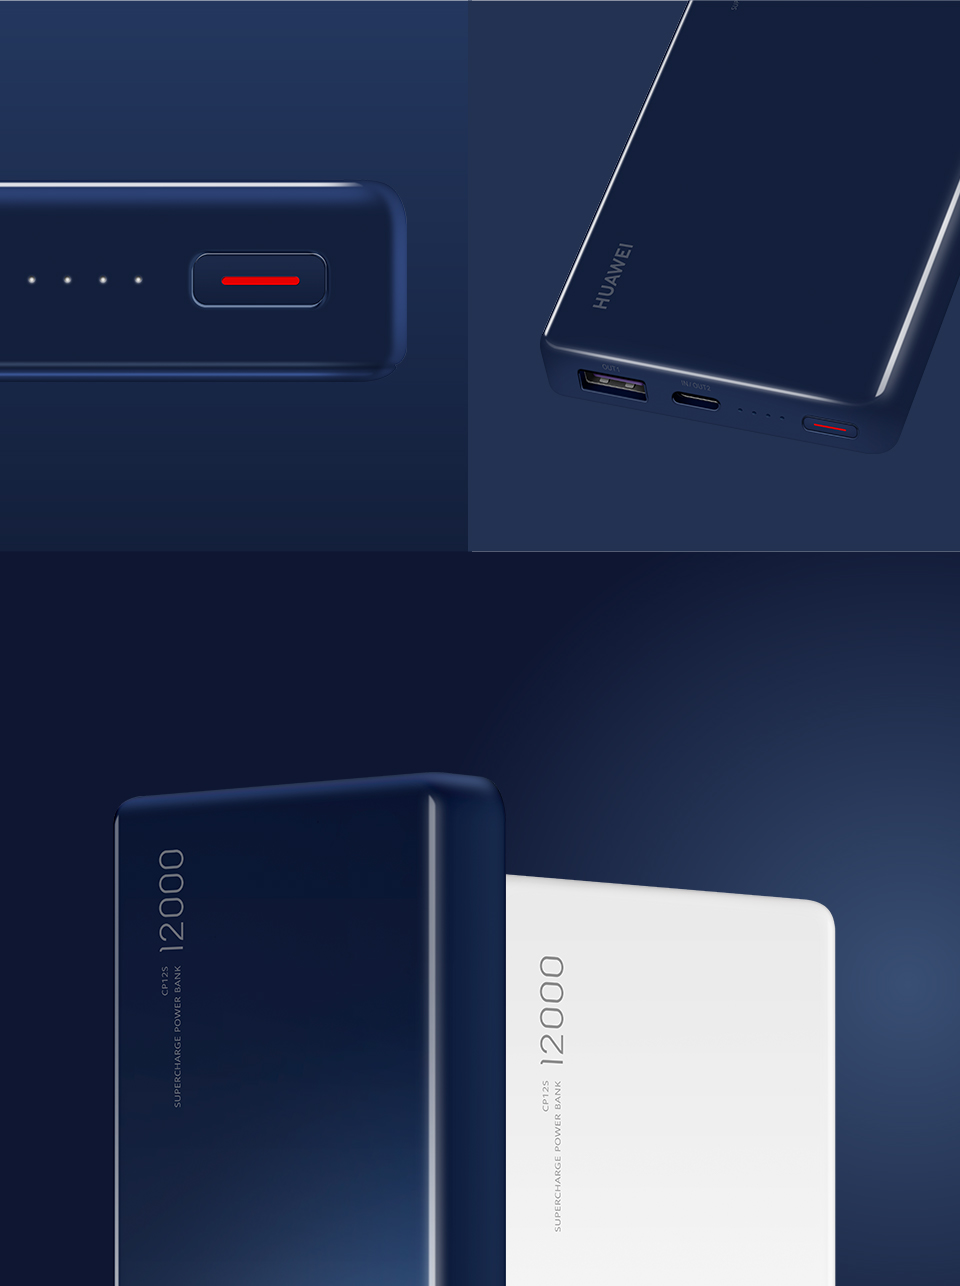 HUAWEI 12000 40W SuperCharge Power Bank